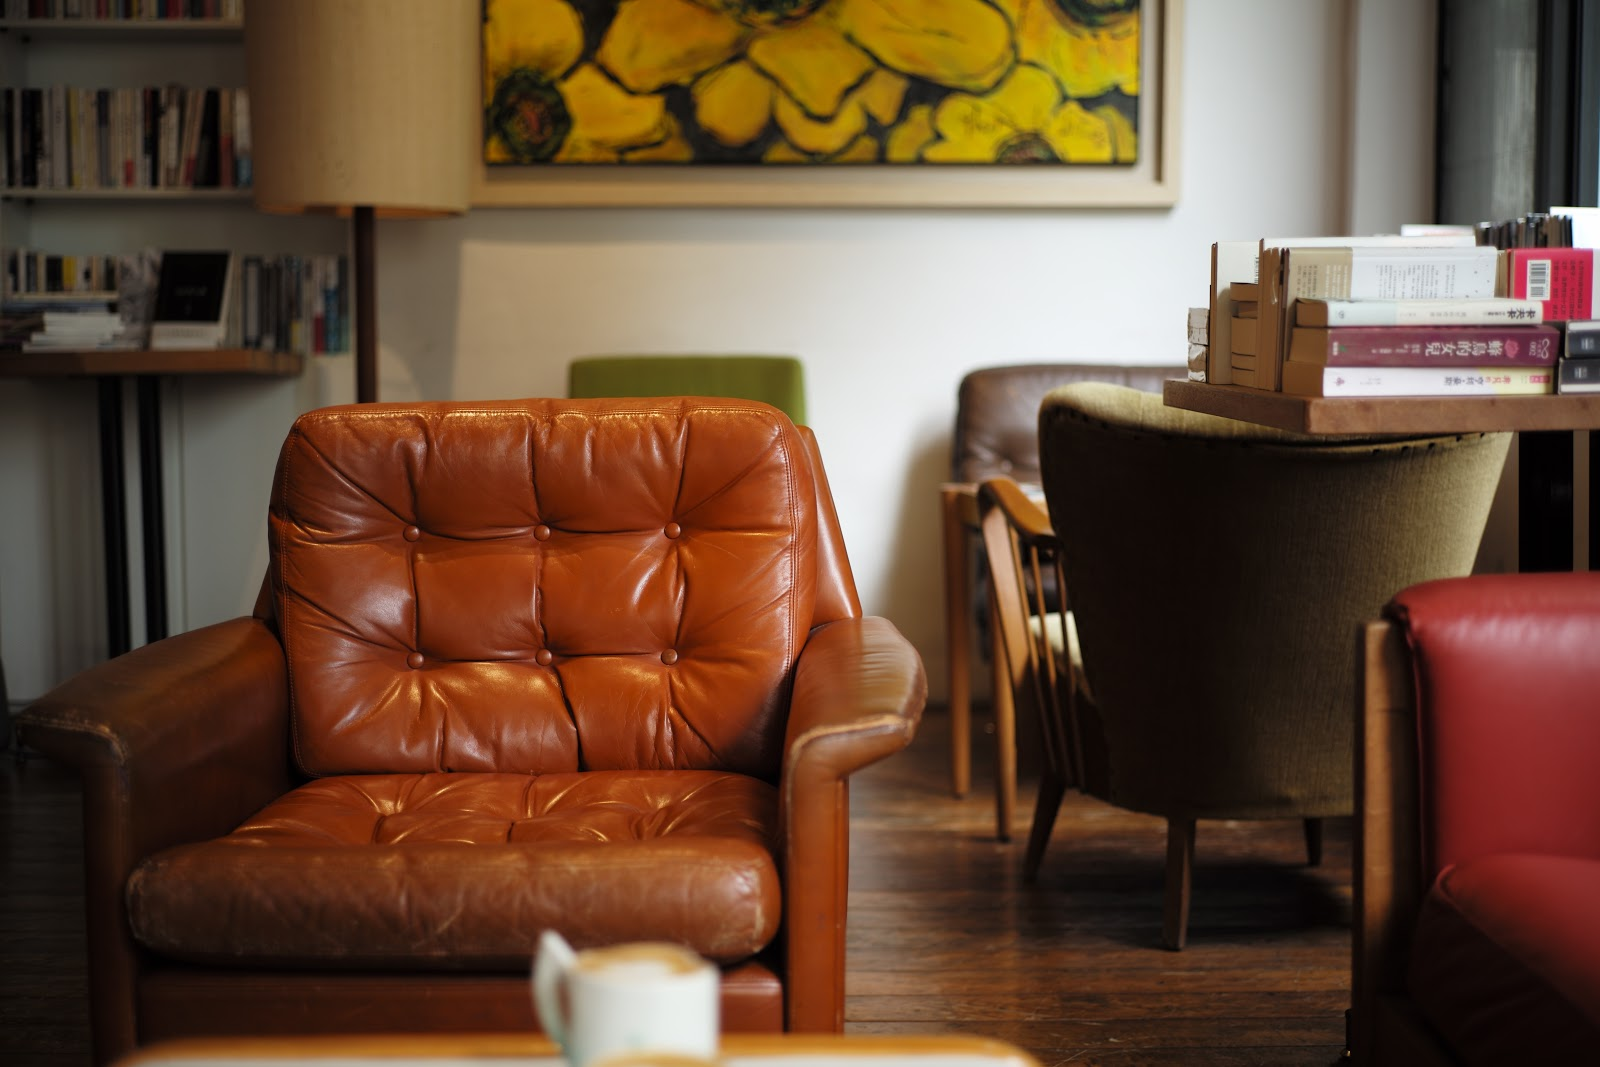 Tufted Brown Leather Armchair - sumber:www.unsplash.com